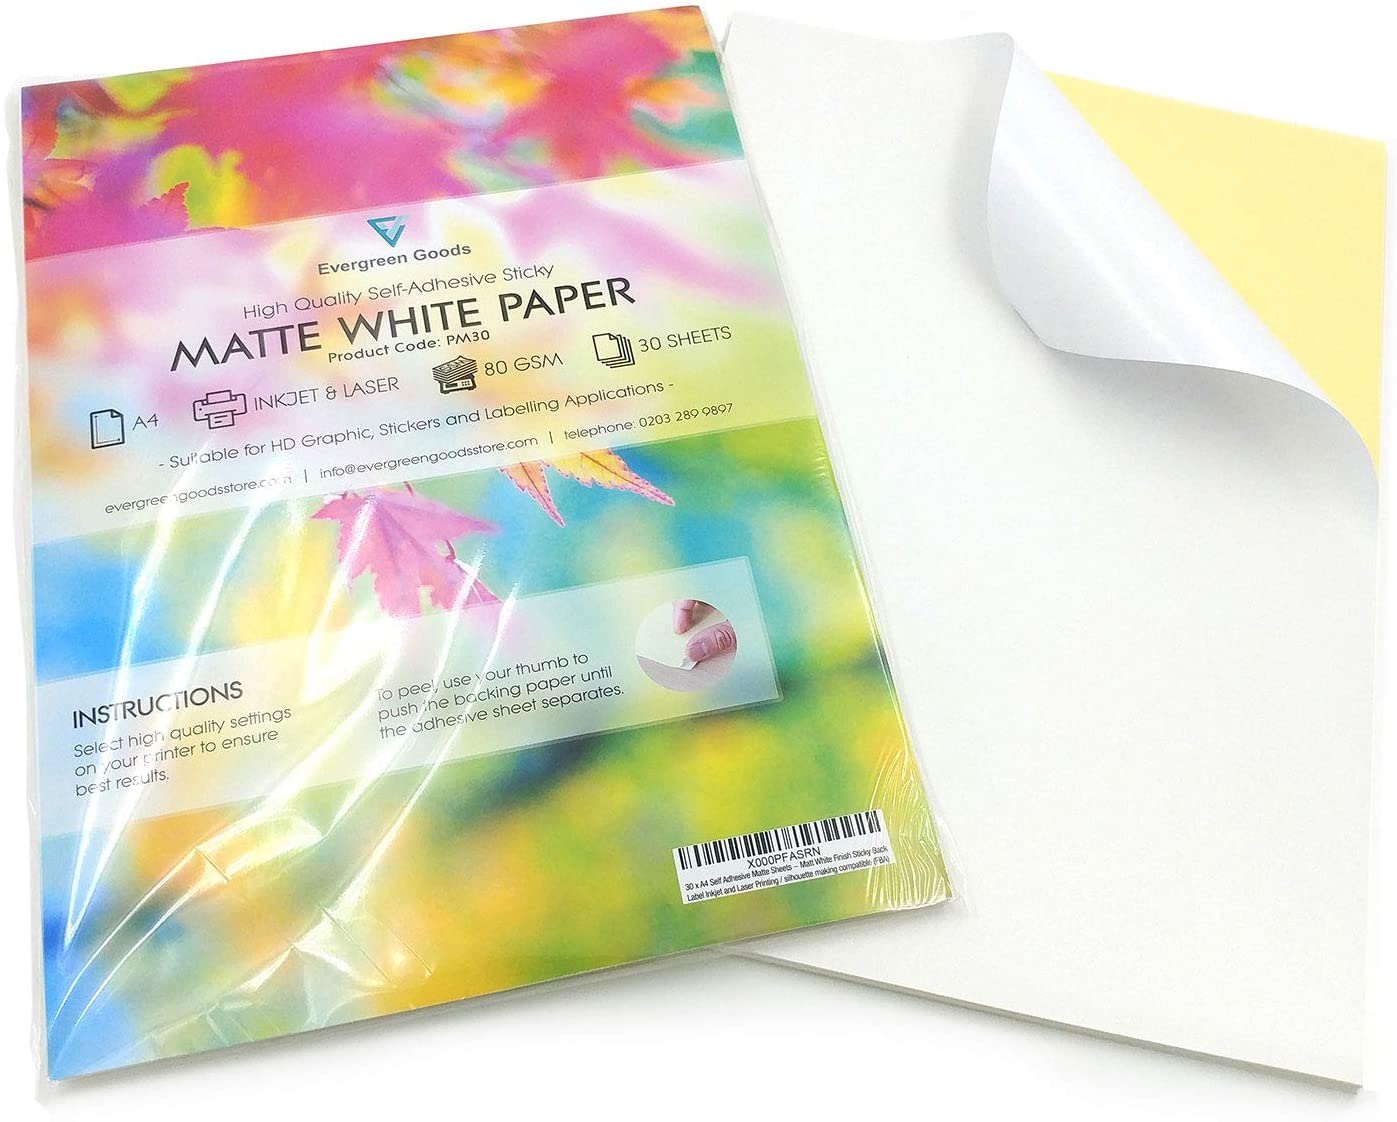 10 Sheets of Quality A4 White MATTE Self Adhesive Sticky Back Label Printing Paper Sheet